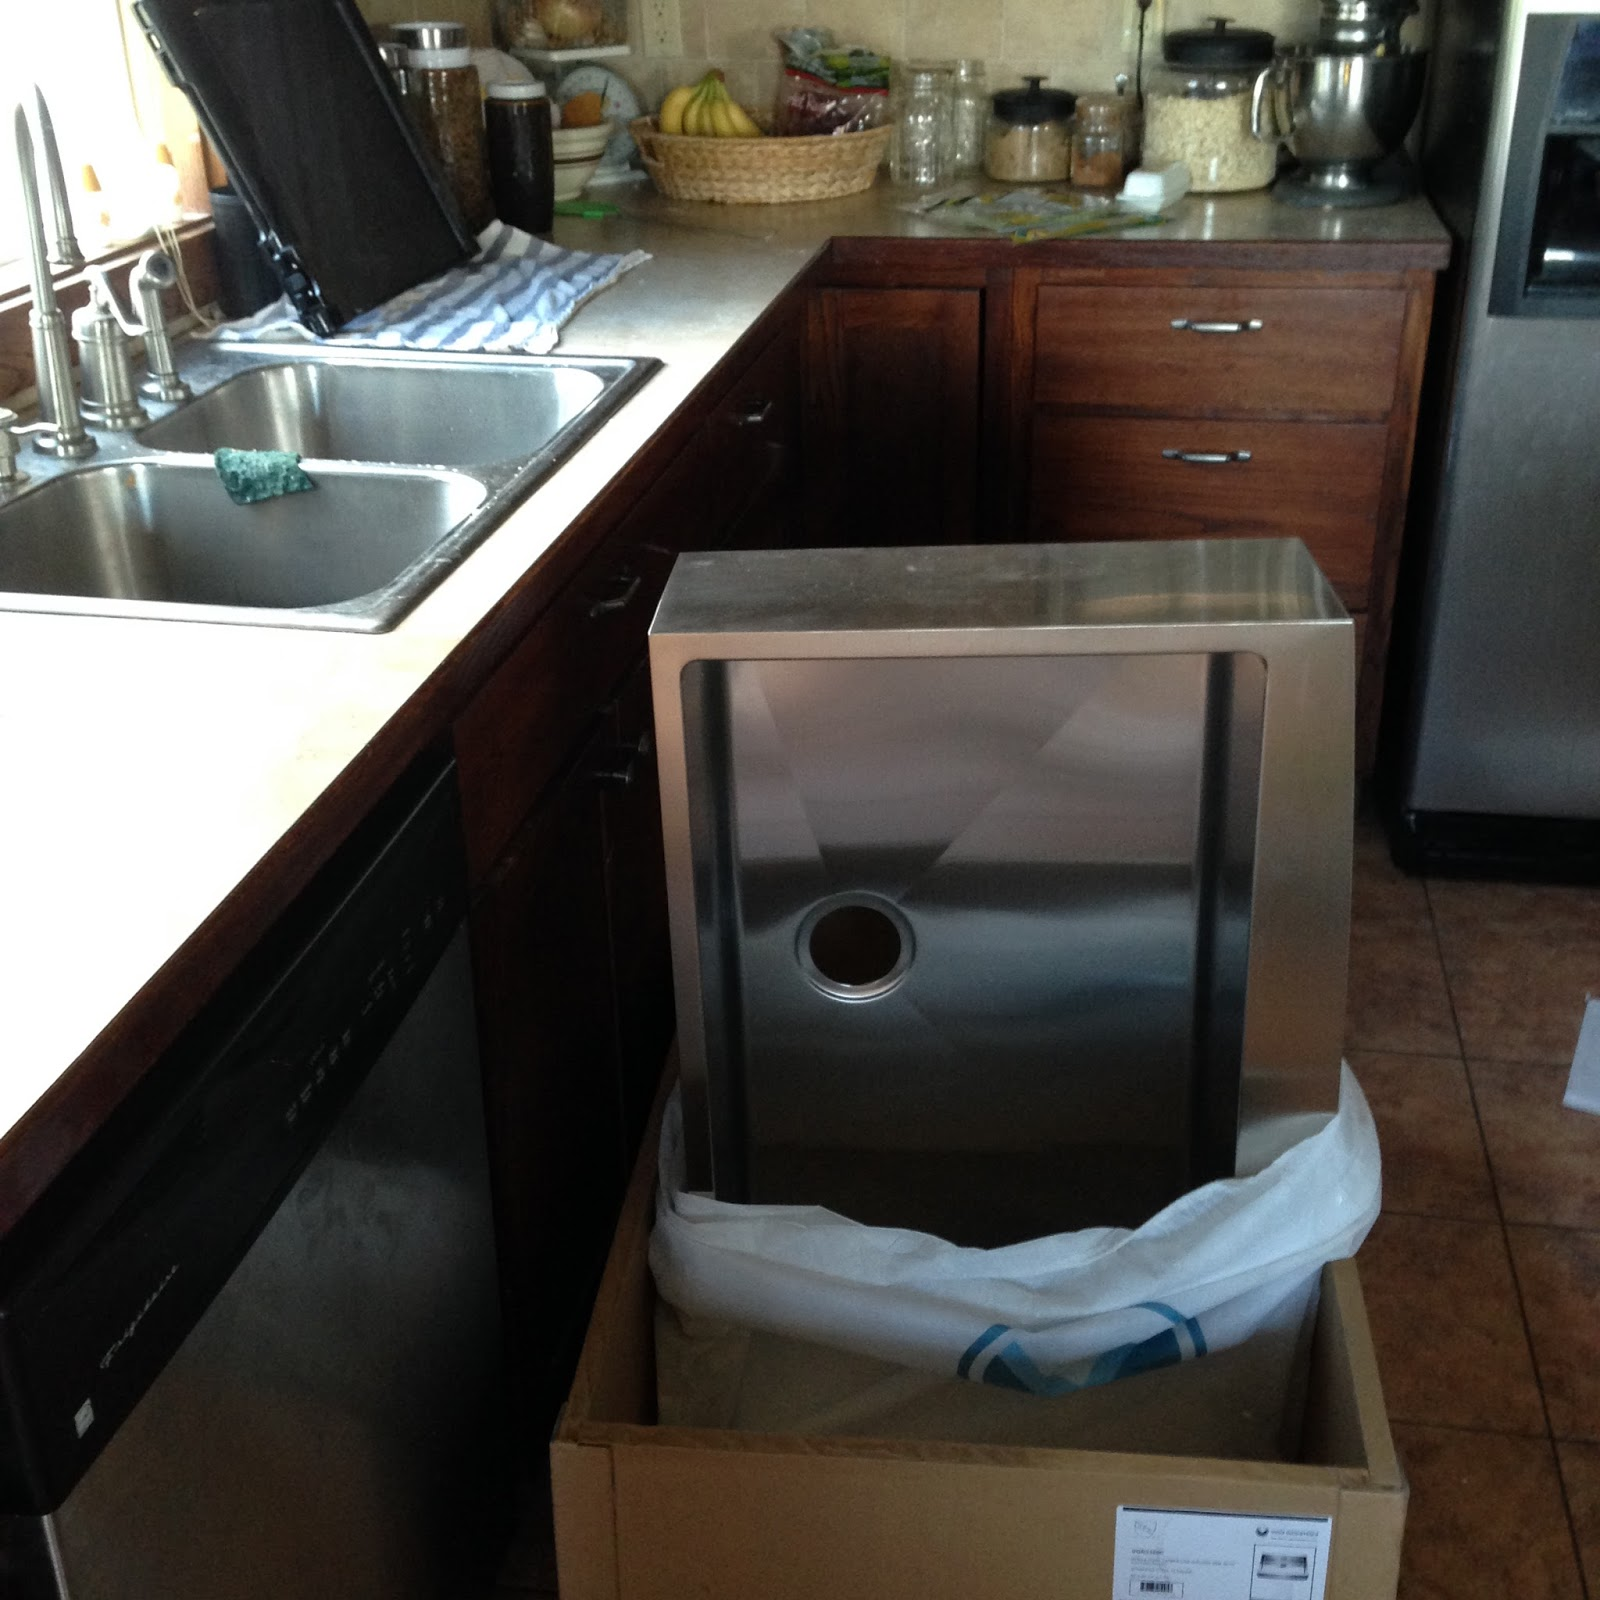 New Stainless Steel Apron Front Sink how we installed it in existing cabinetry